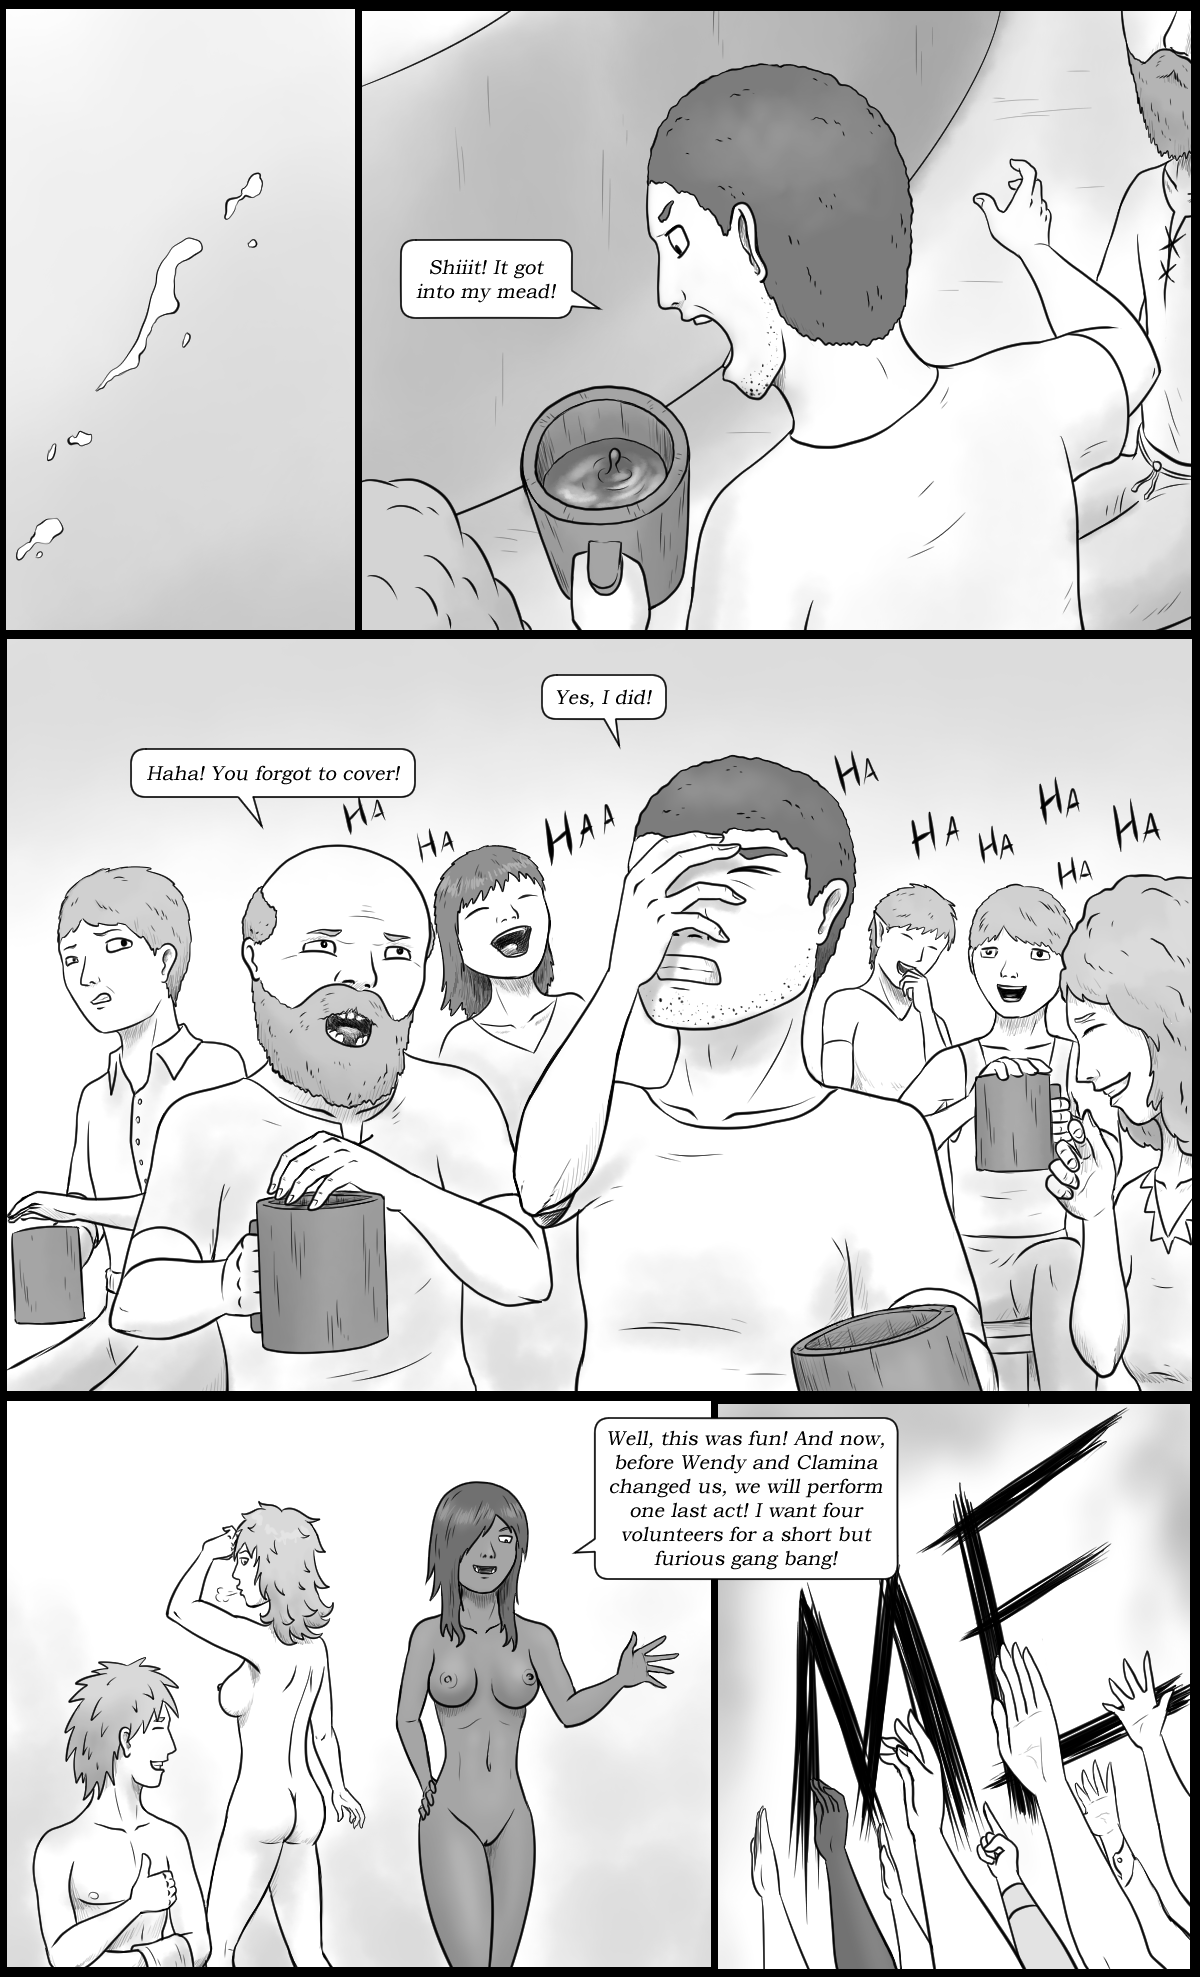 Page 46 - Always cover your drink in this tavern